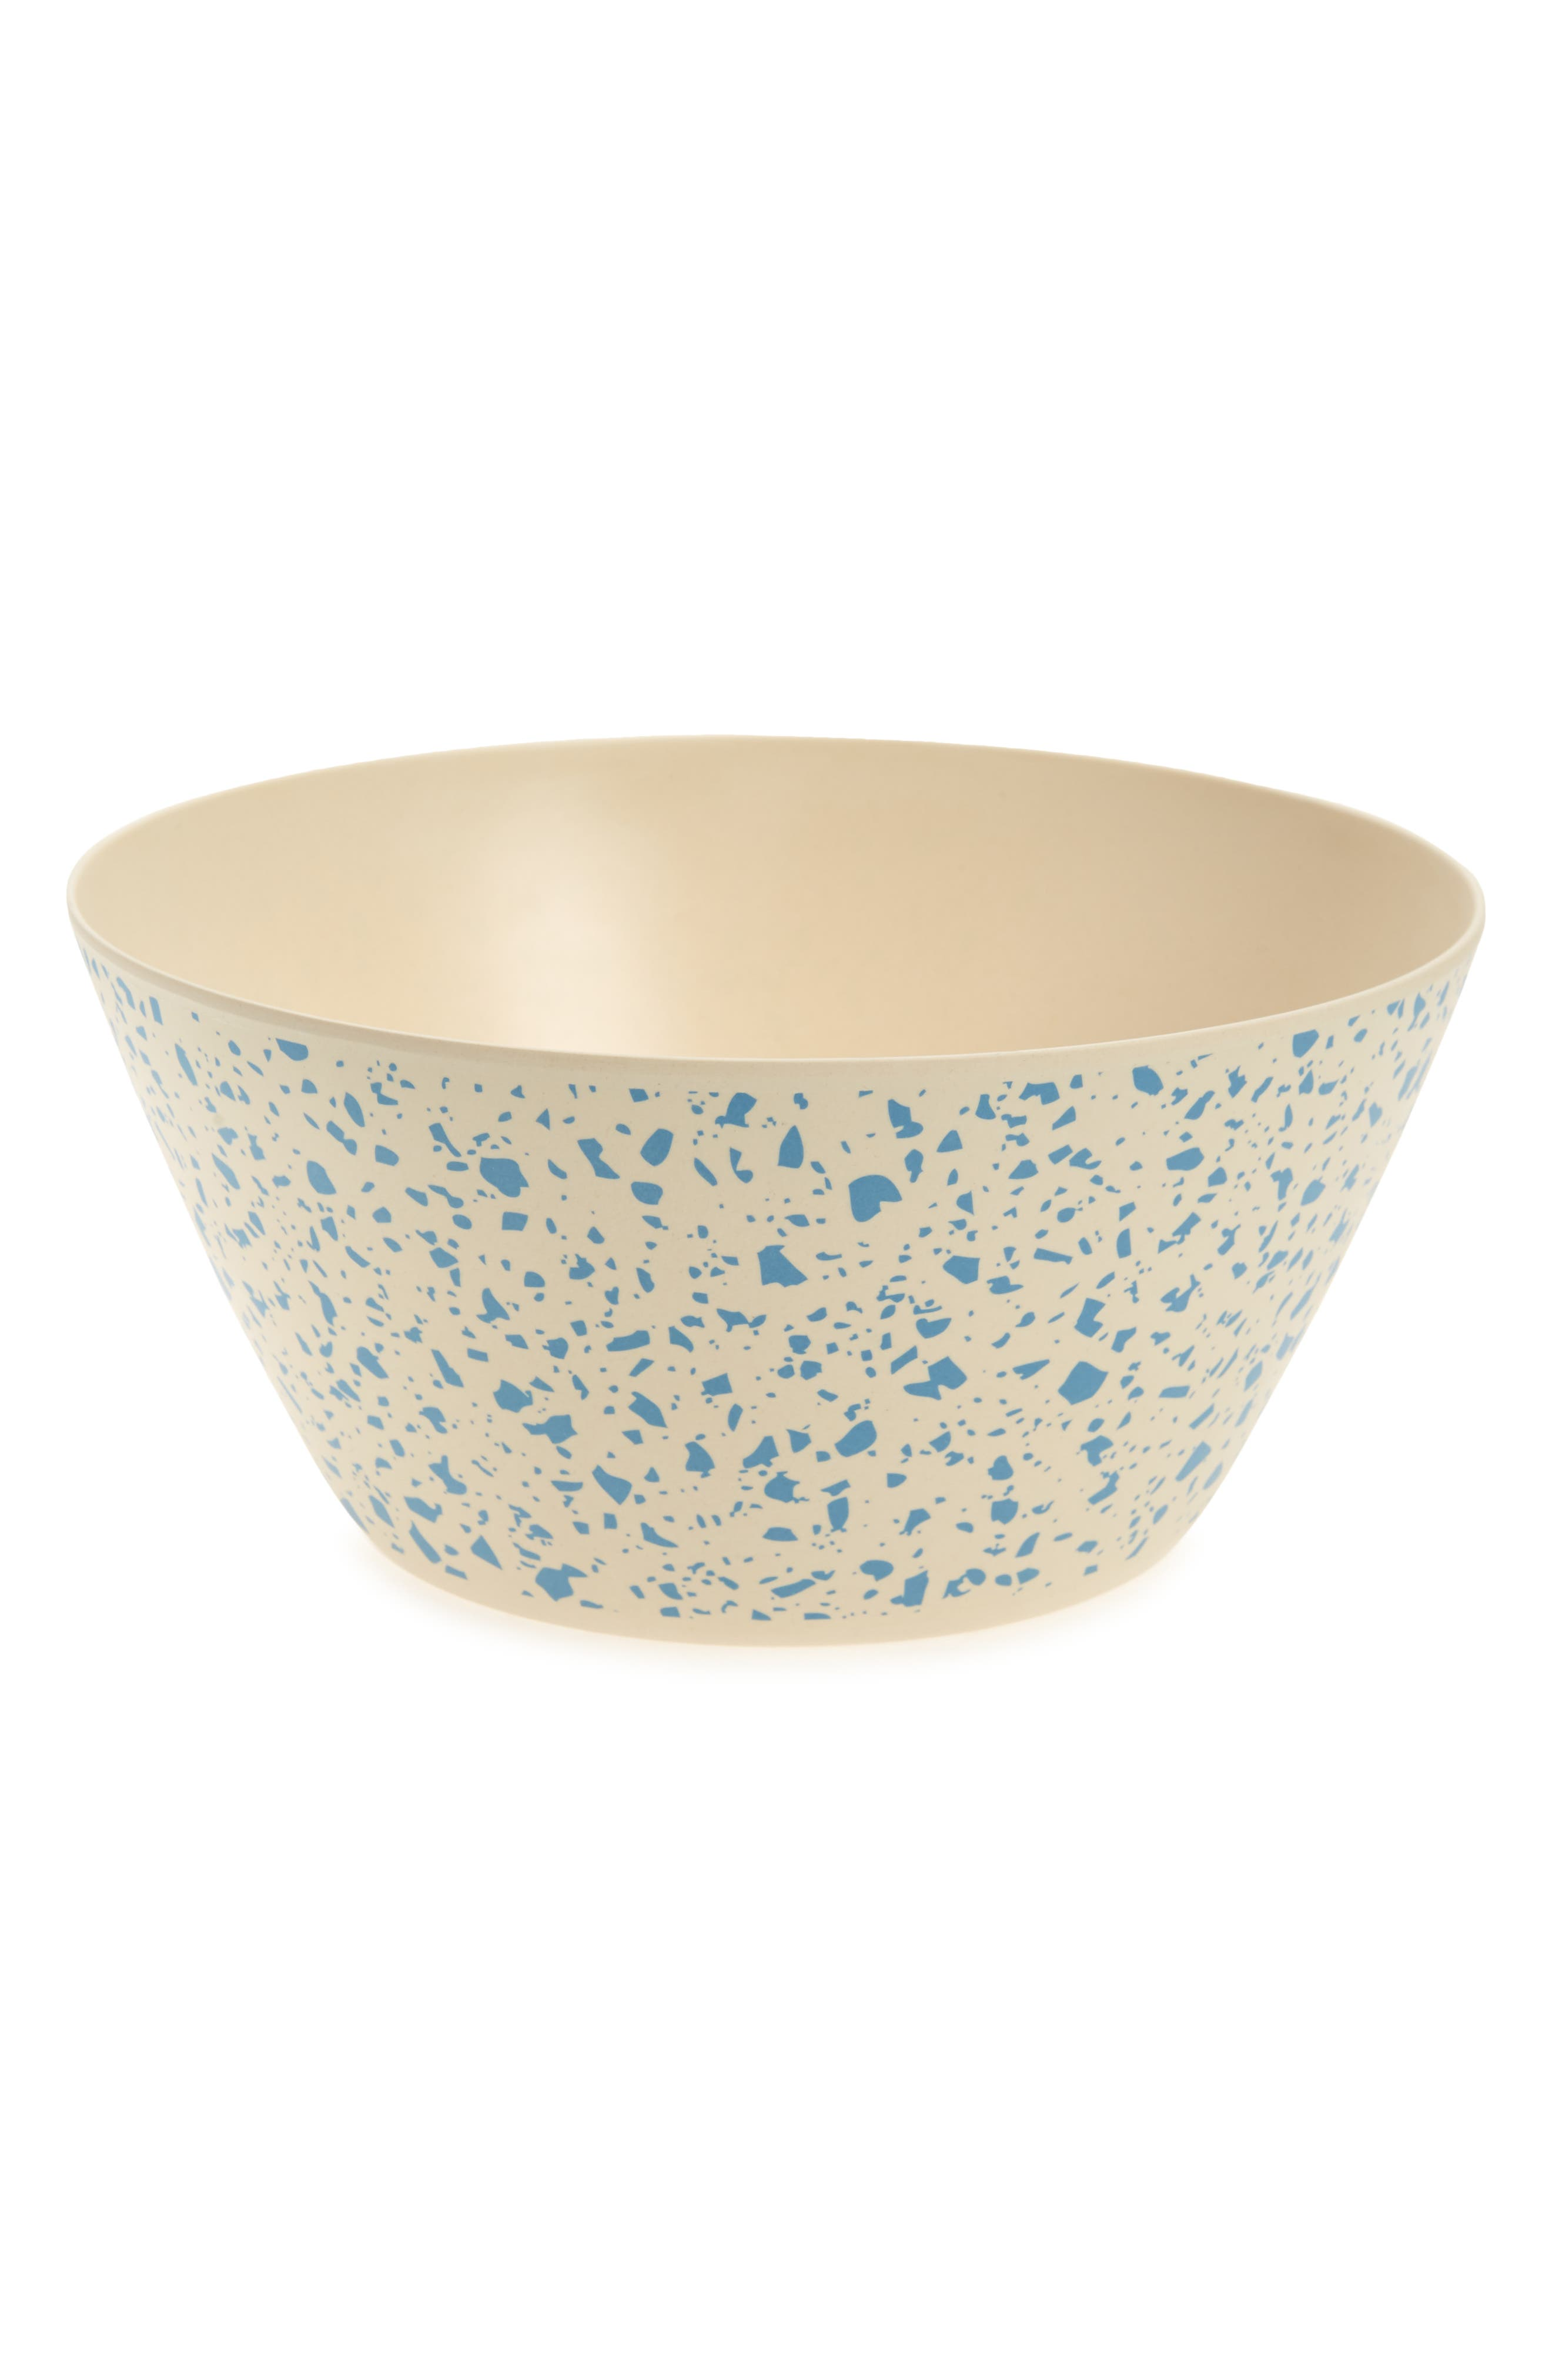 Share good food and sustainable practices with a terrazzo-look serving bowl made from repurposed scraps of biodegradable bamboo fiber. Added bonus: it\\\'s practically unbreakable and won\\\'t shatter if you drop it. Style Name: Xenia Taler Lido Serving Bowl. Style Number: 6118091. Available in stores.